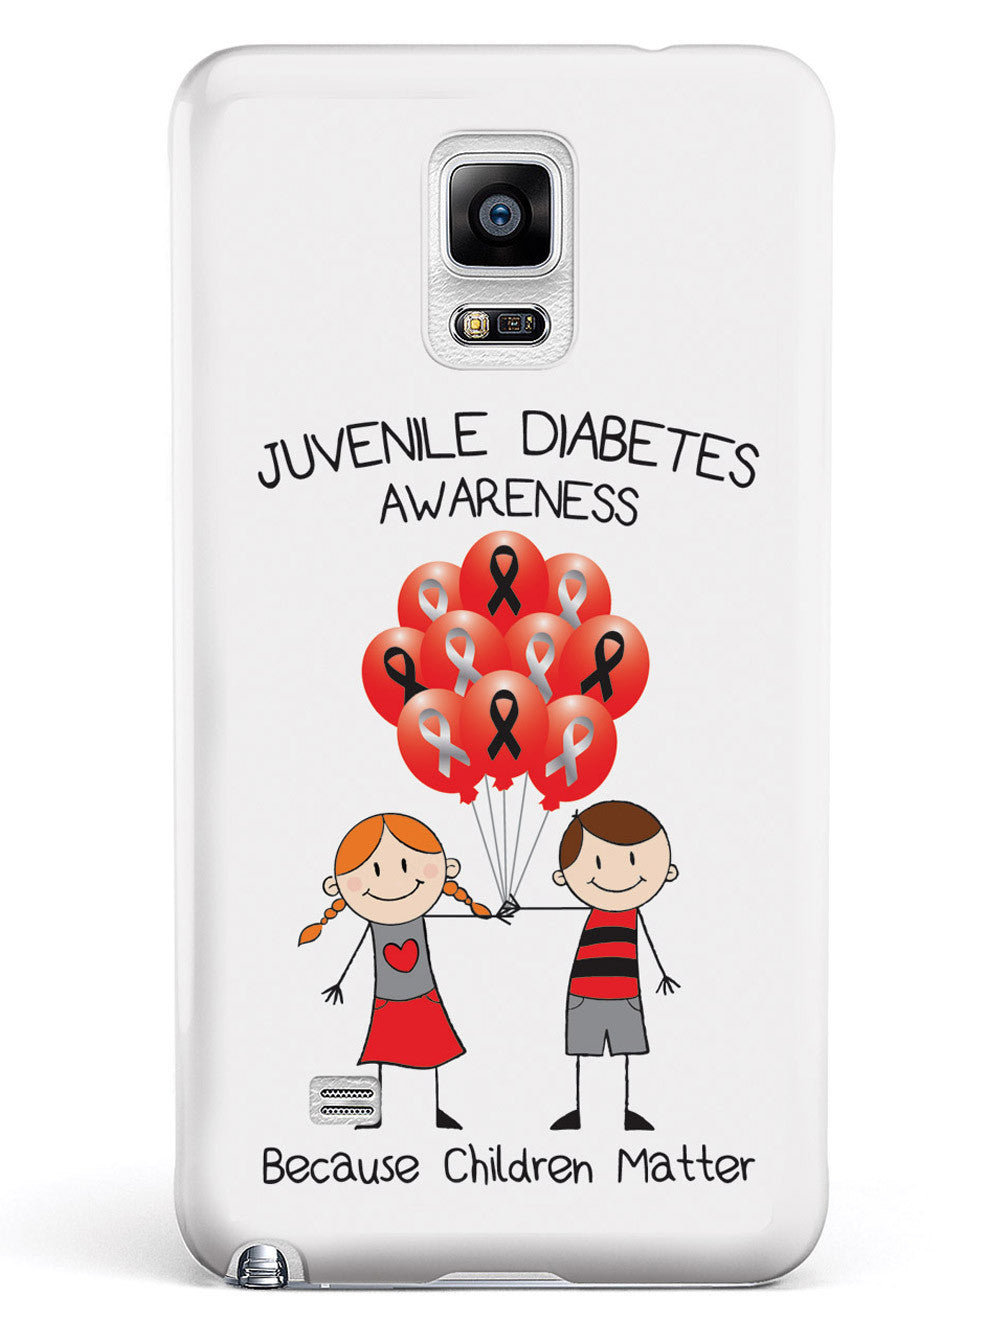 Juvenile Diabetes Child Awareness Case